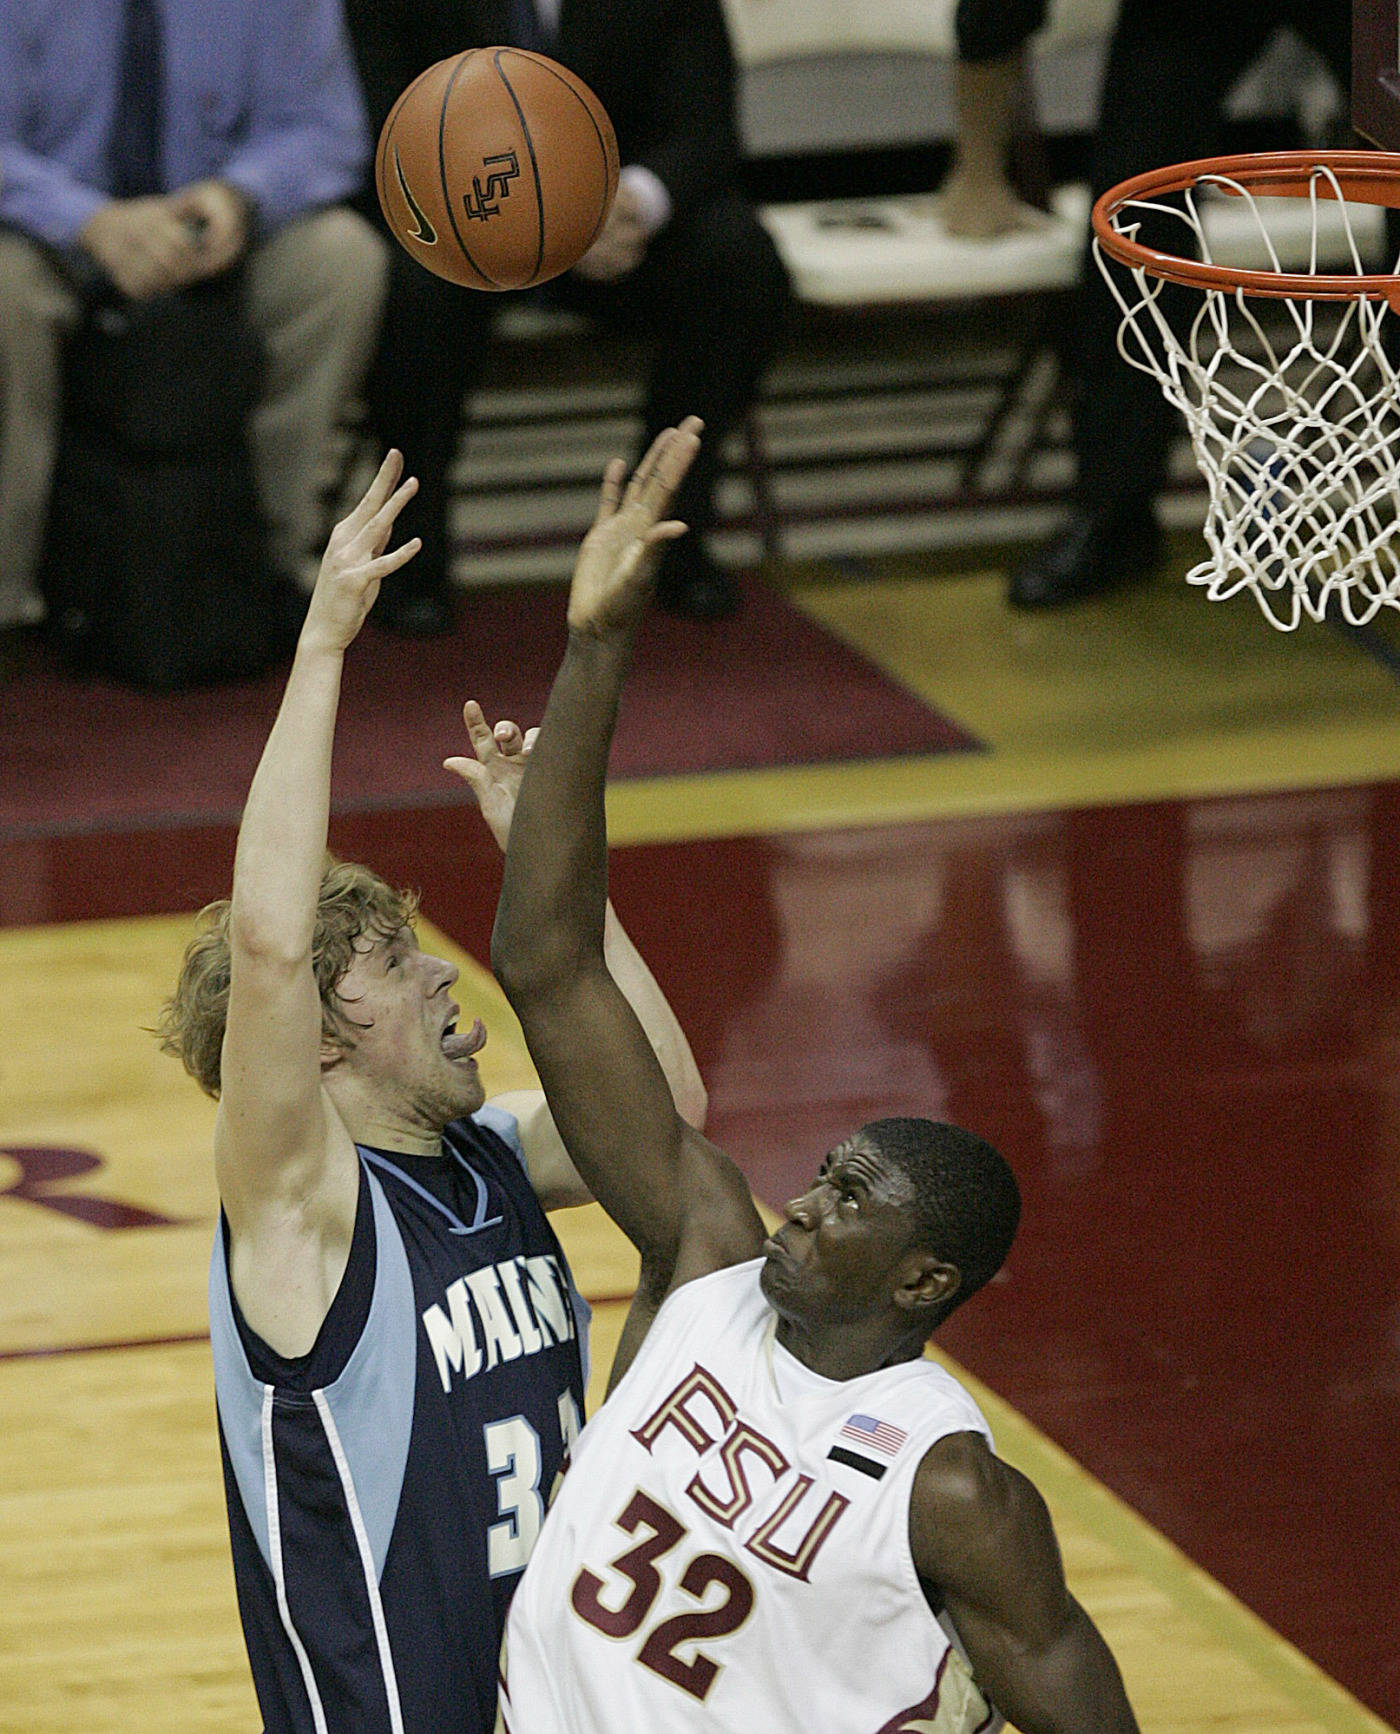 Maine's Jordan Cook tries to shoot over Florida State's Solomon Alabi in the first half.